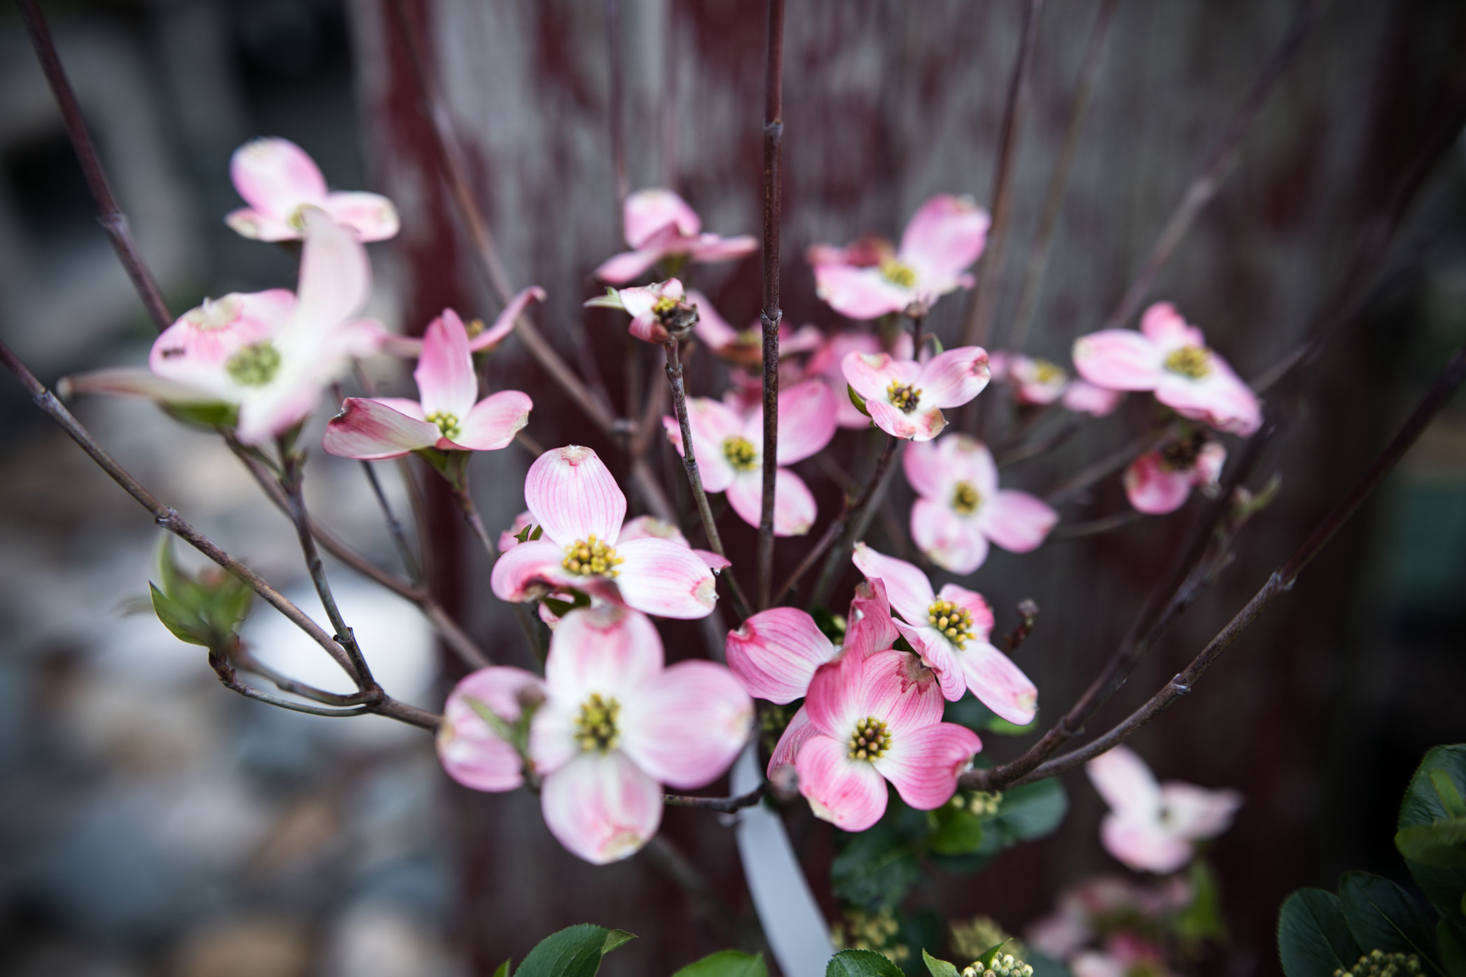 Vibrant pink flowering dogwood, Benthamidia florida(formerly Cornus florida), is one of the many flowering trees offered at Nasami.